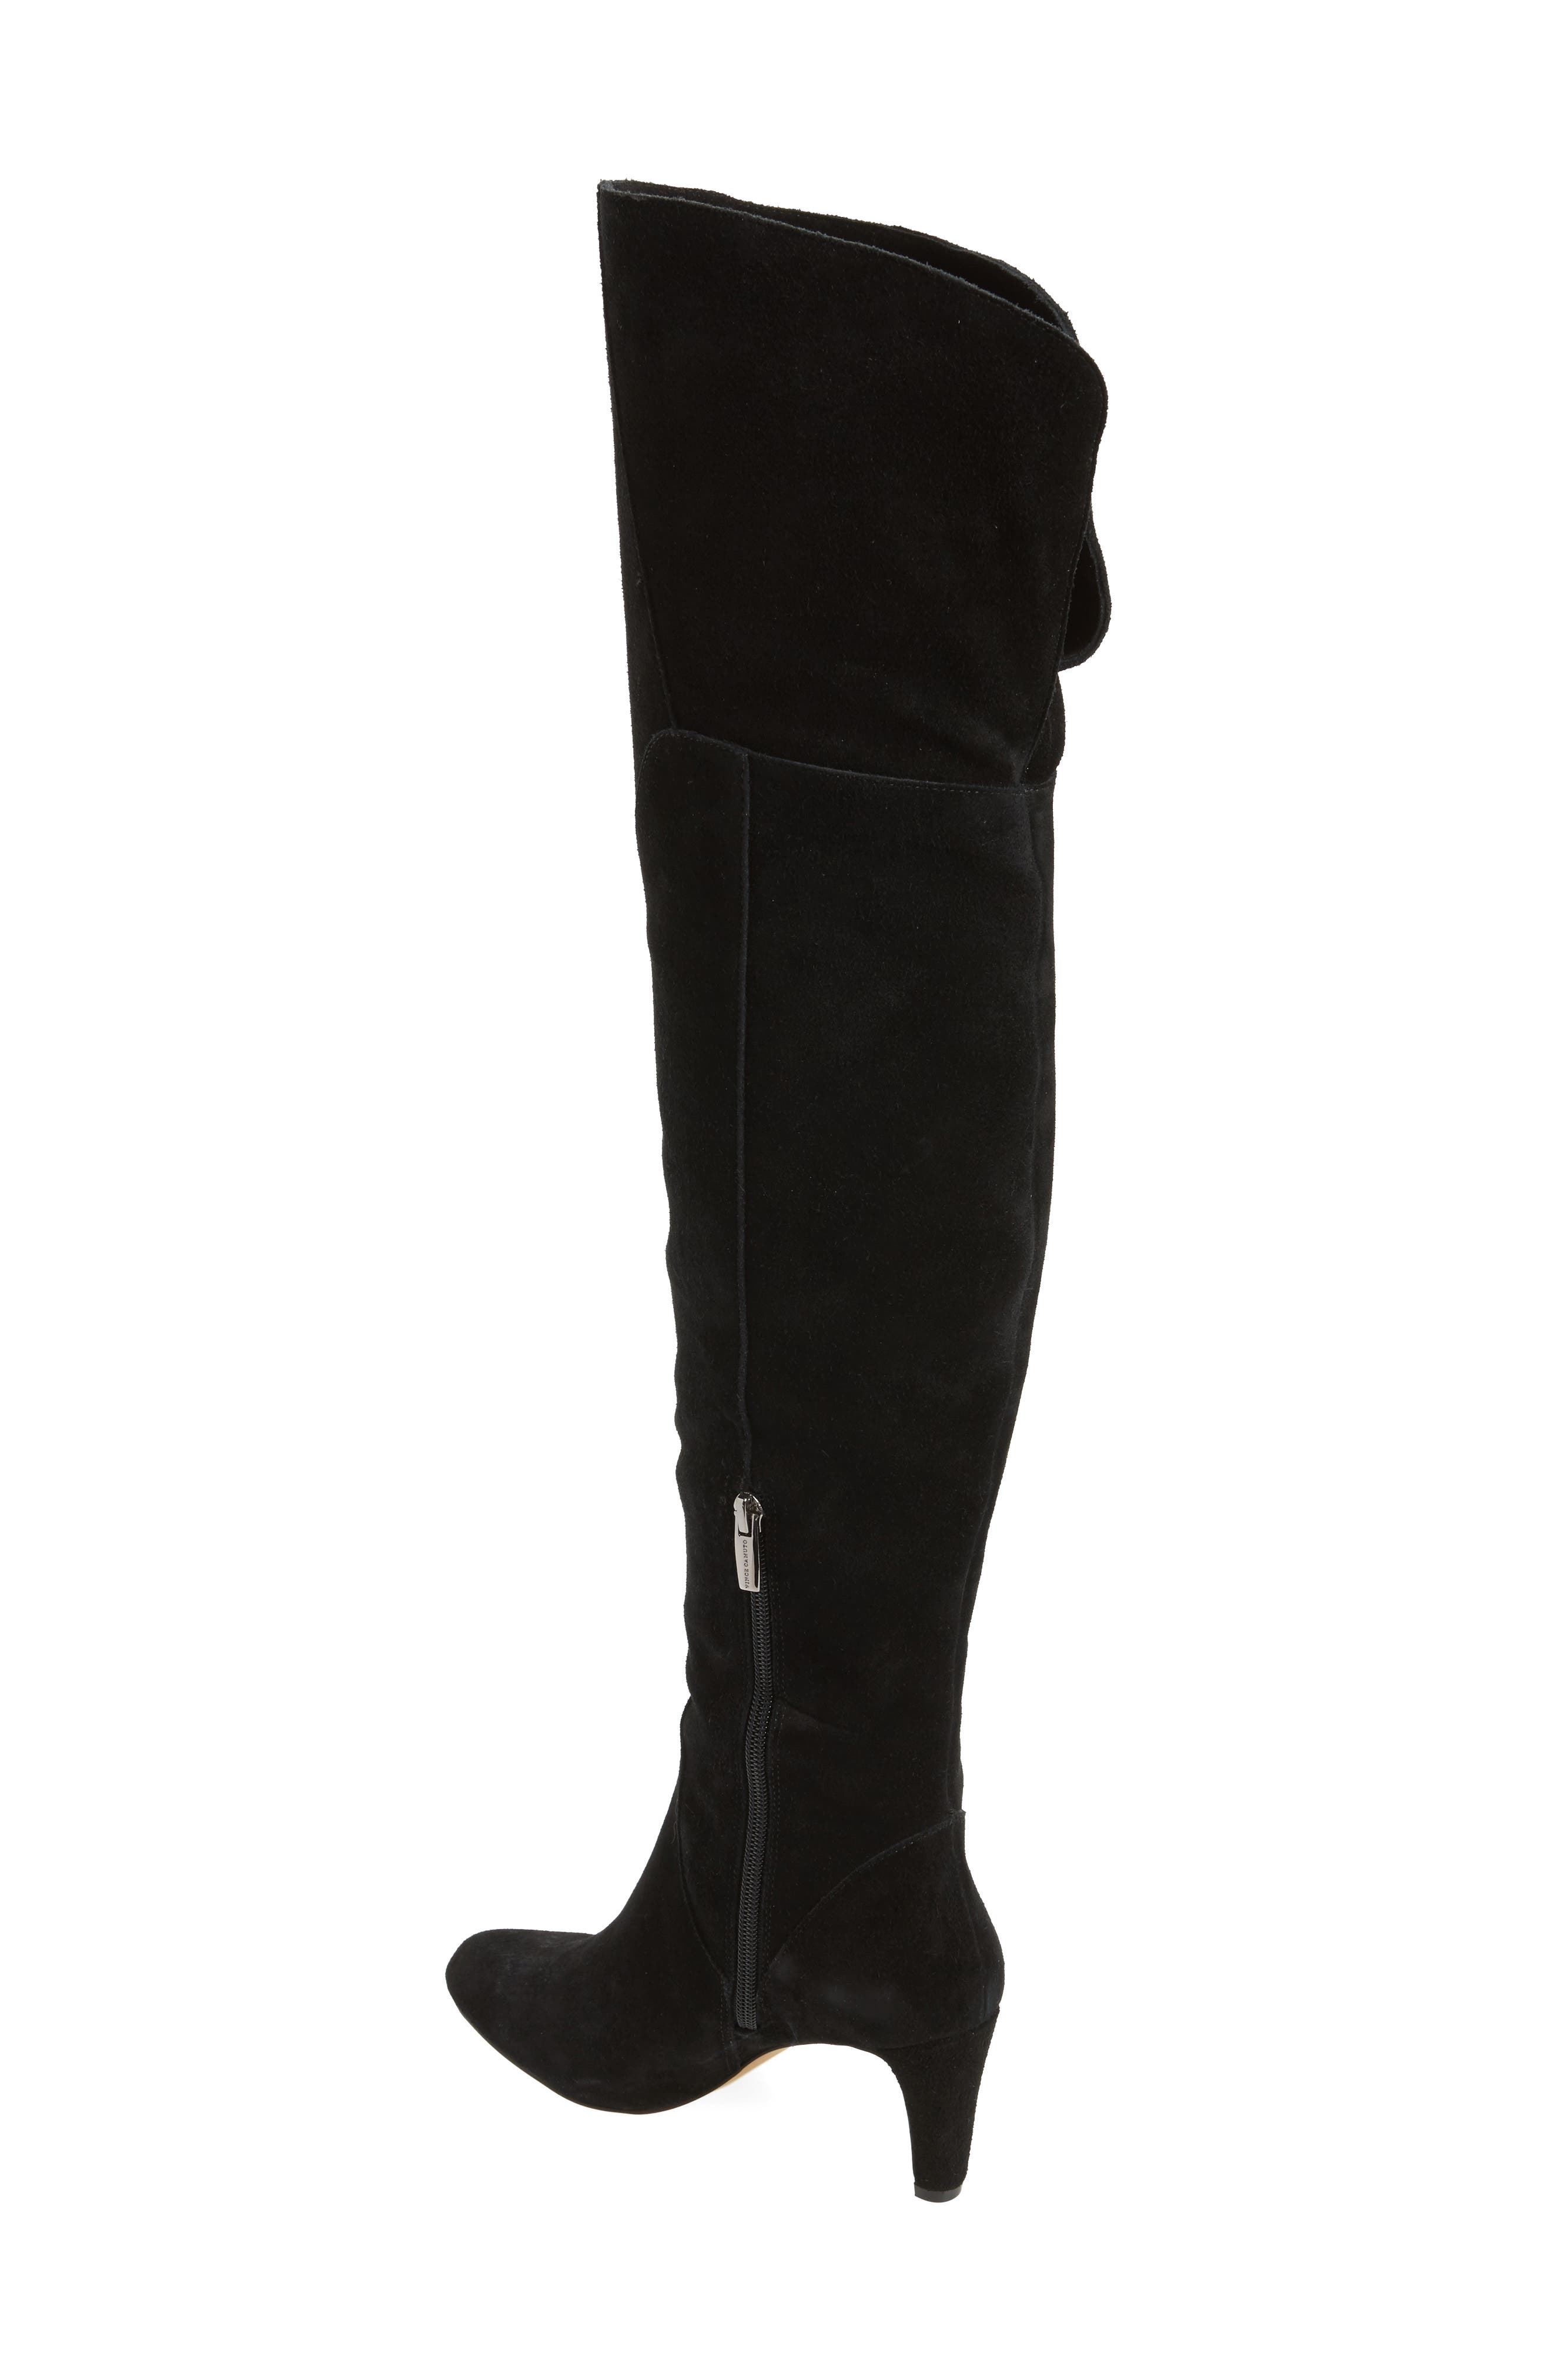 Armaceli Over the Knee Boot,                             Alternate thumbnail 5, color,